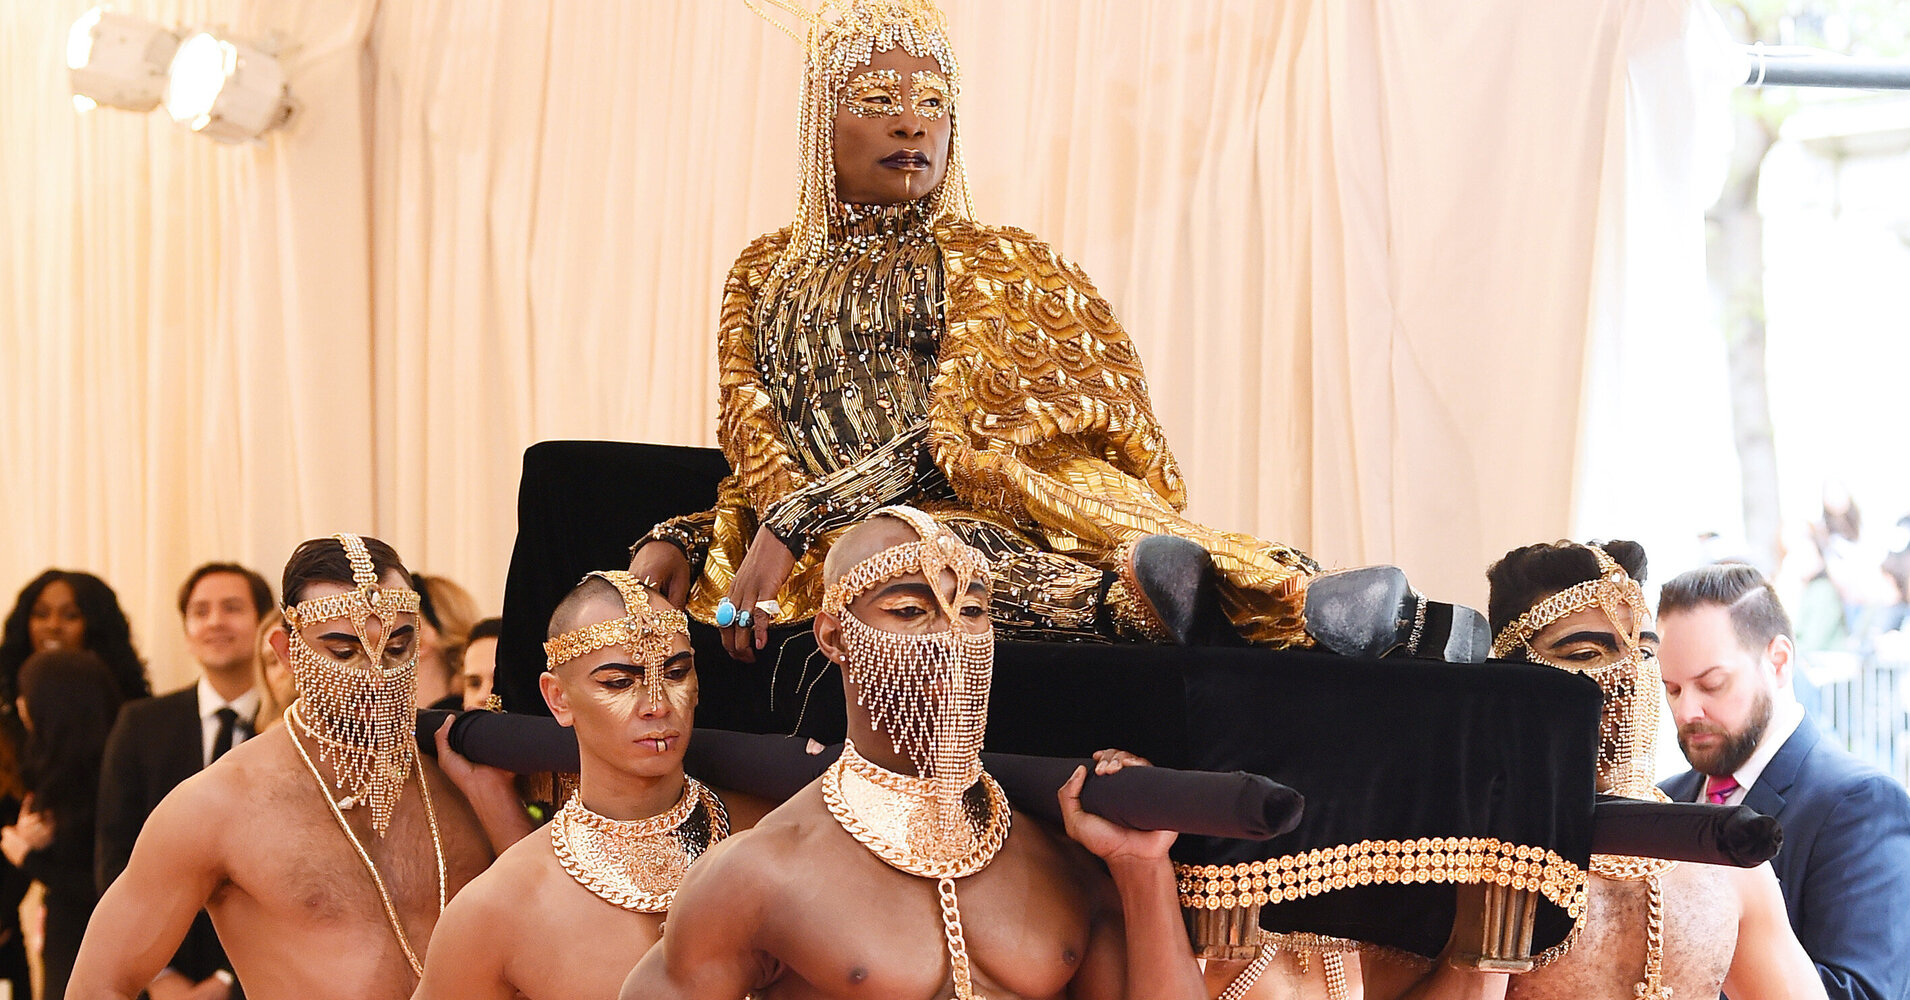 billy-porter-arrives-at-the-2019-met-gala-carried-by-shirtless-men.jpeg